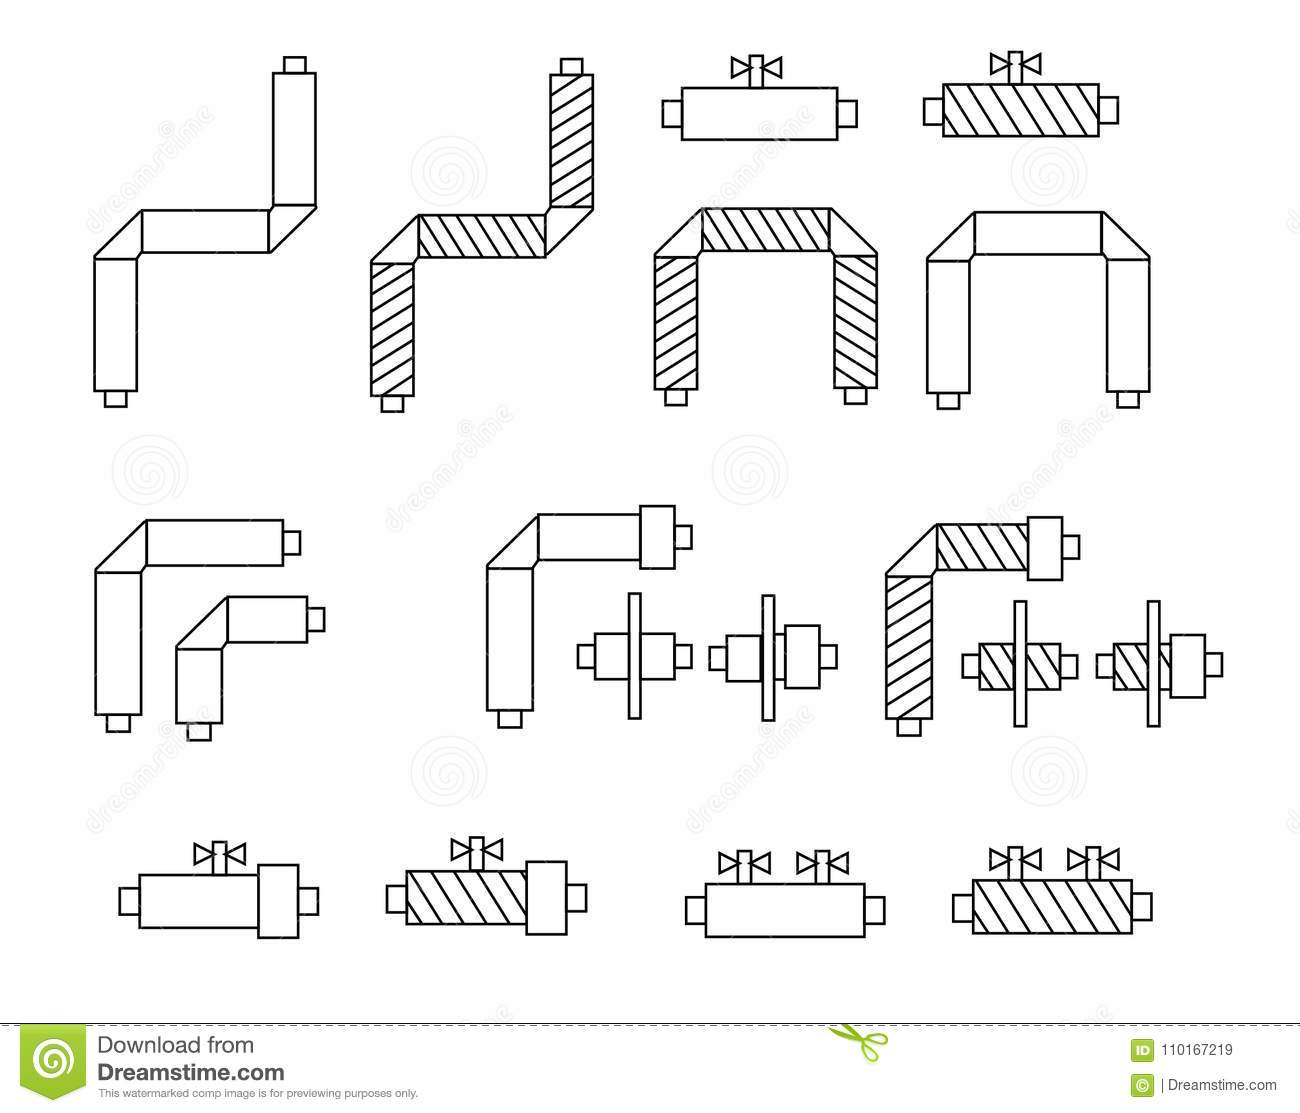 hight resolution of icons of pipes in polyurethane foam insulation and schematic diagram components for websites posters banners